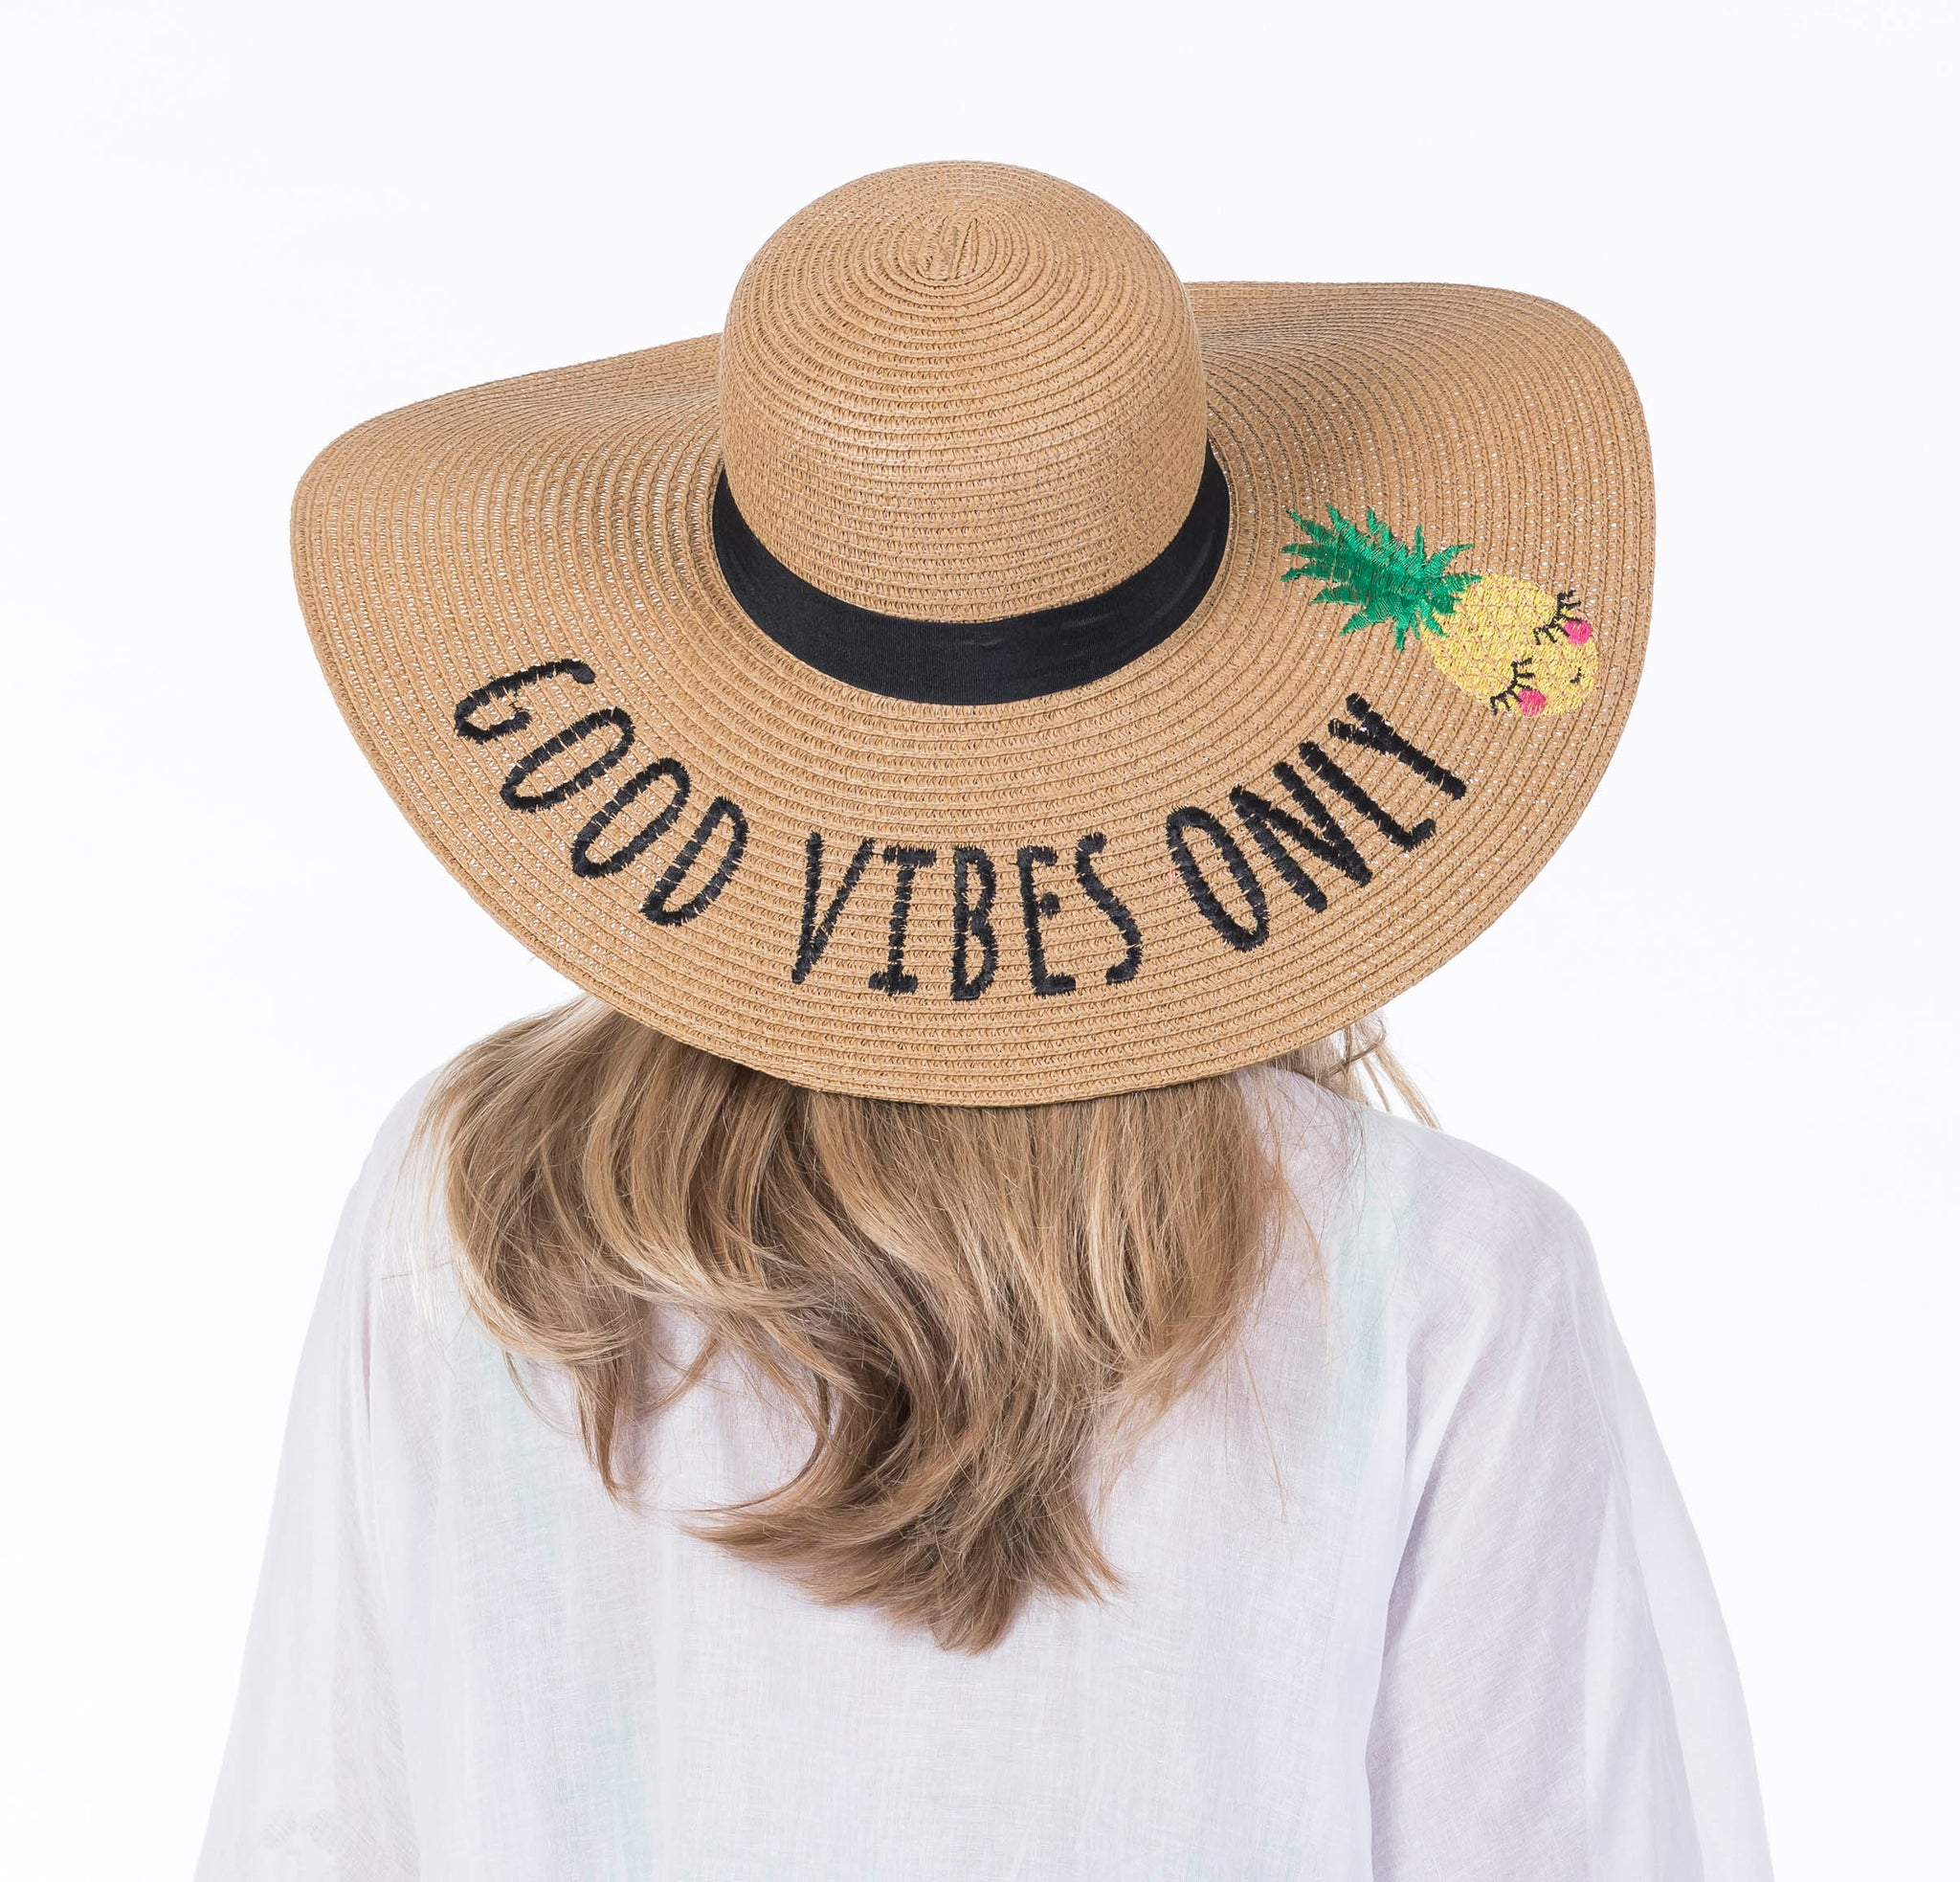 Good Vibes Only Wholesale Sun Hats for Women